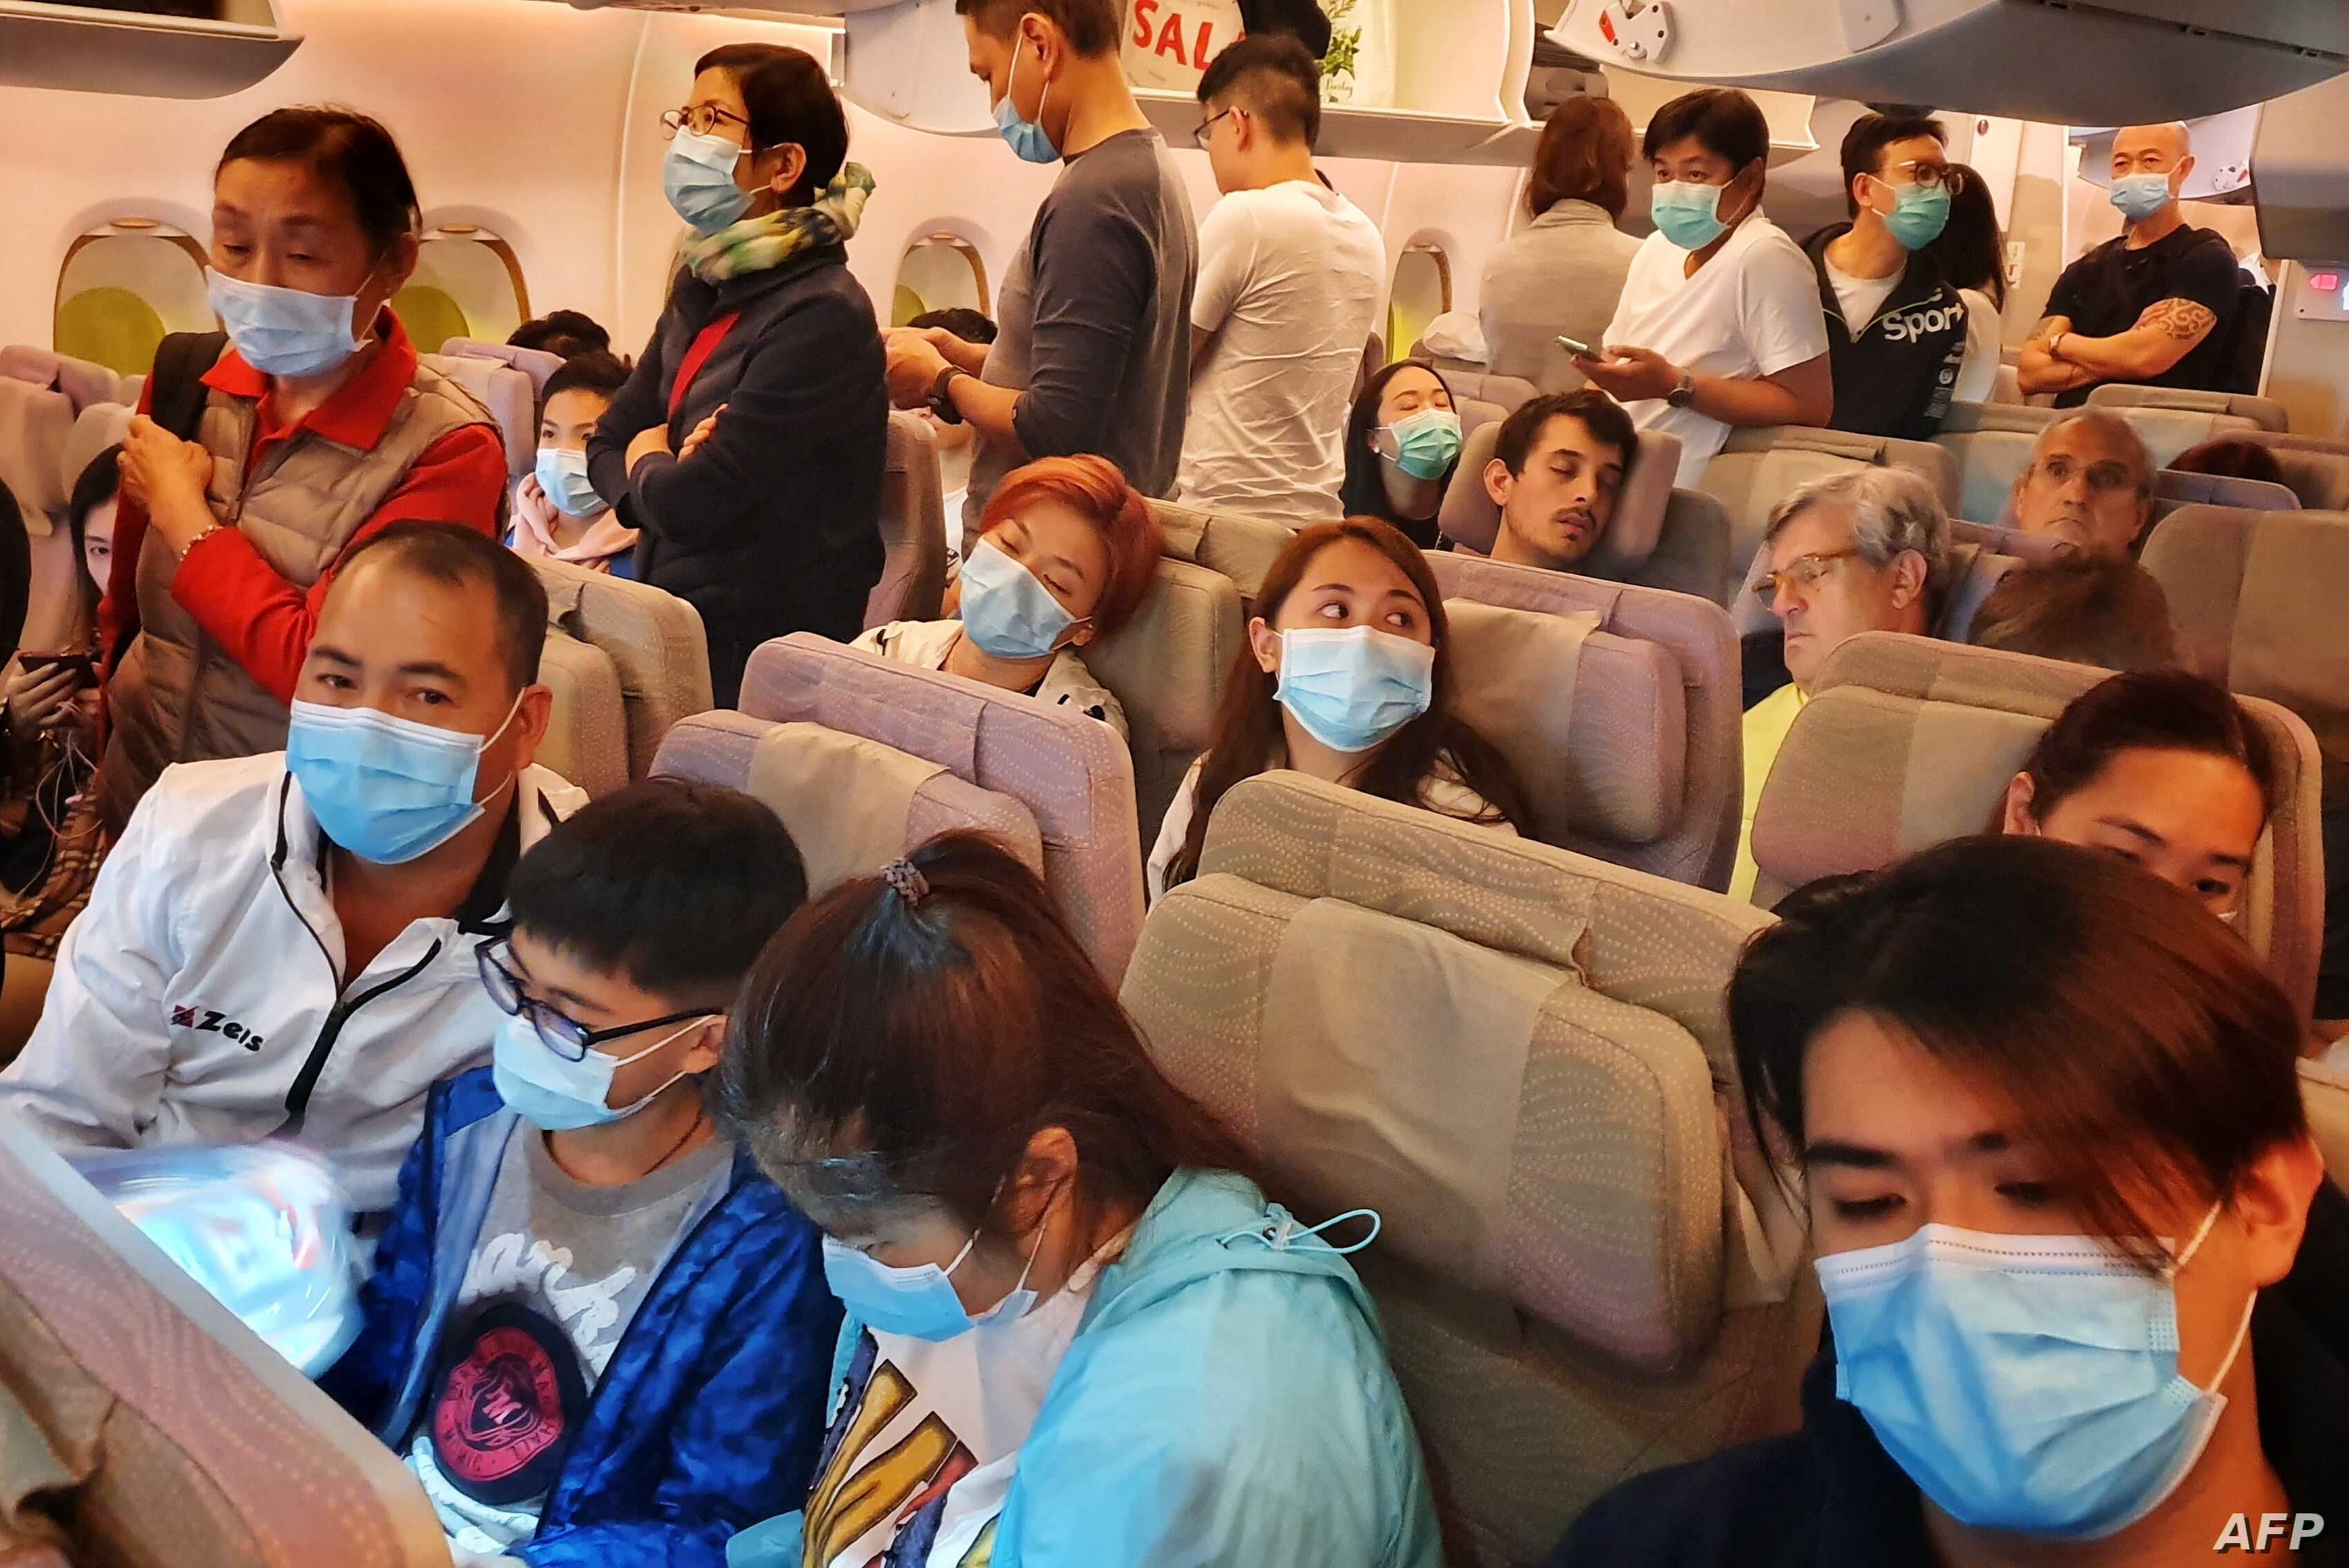 At Least 10 Chinese Cities on Lockdown; 830 Confirmed Coronavirus ...